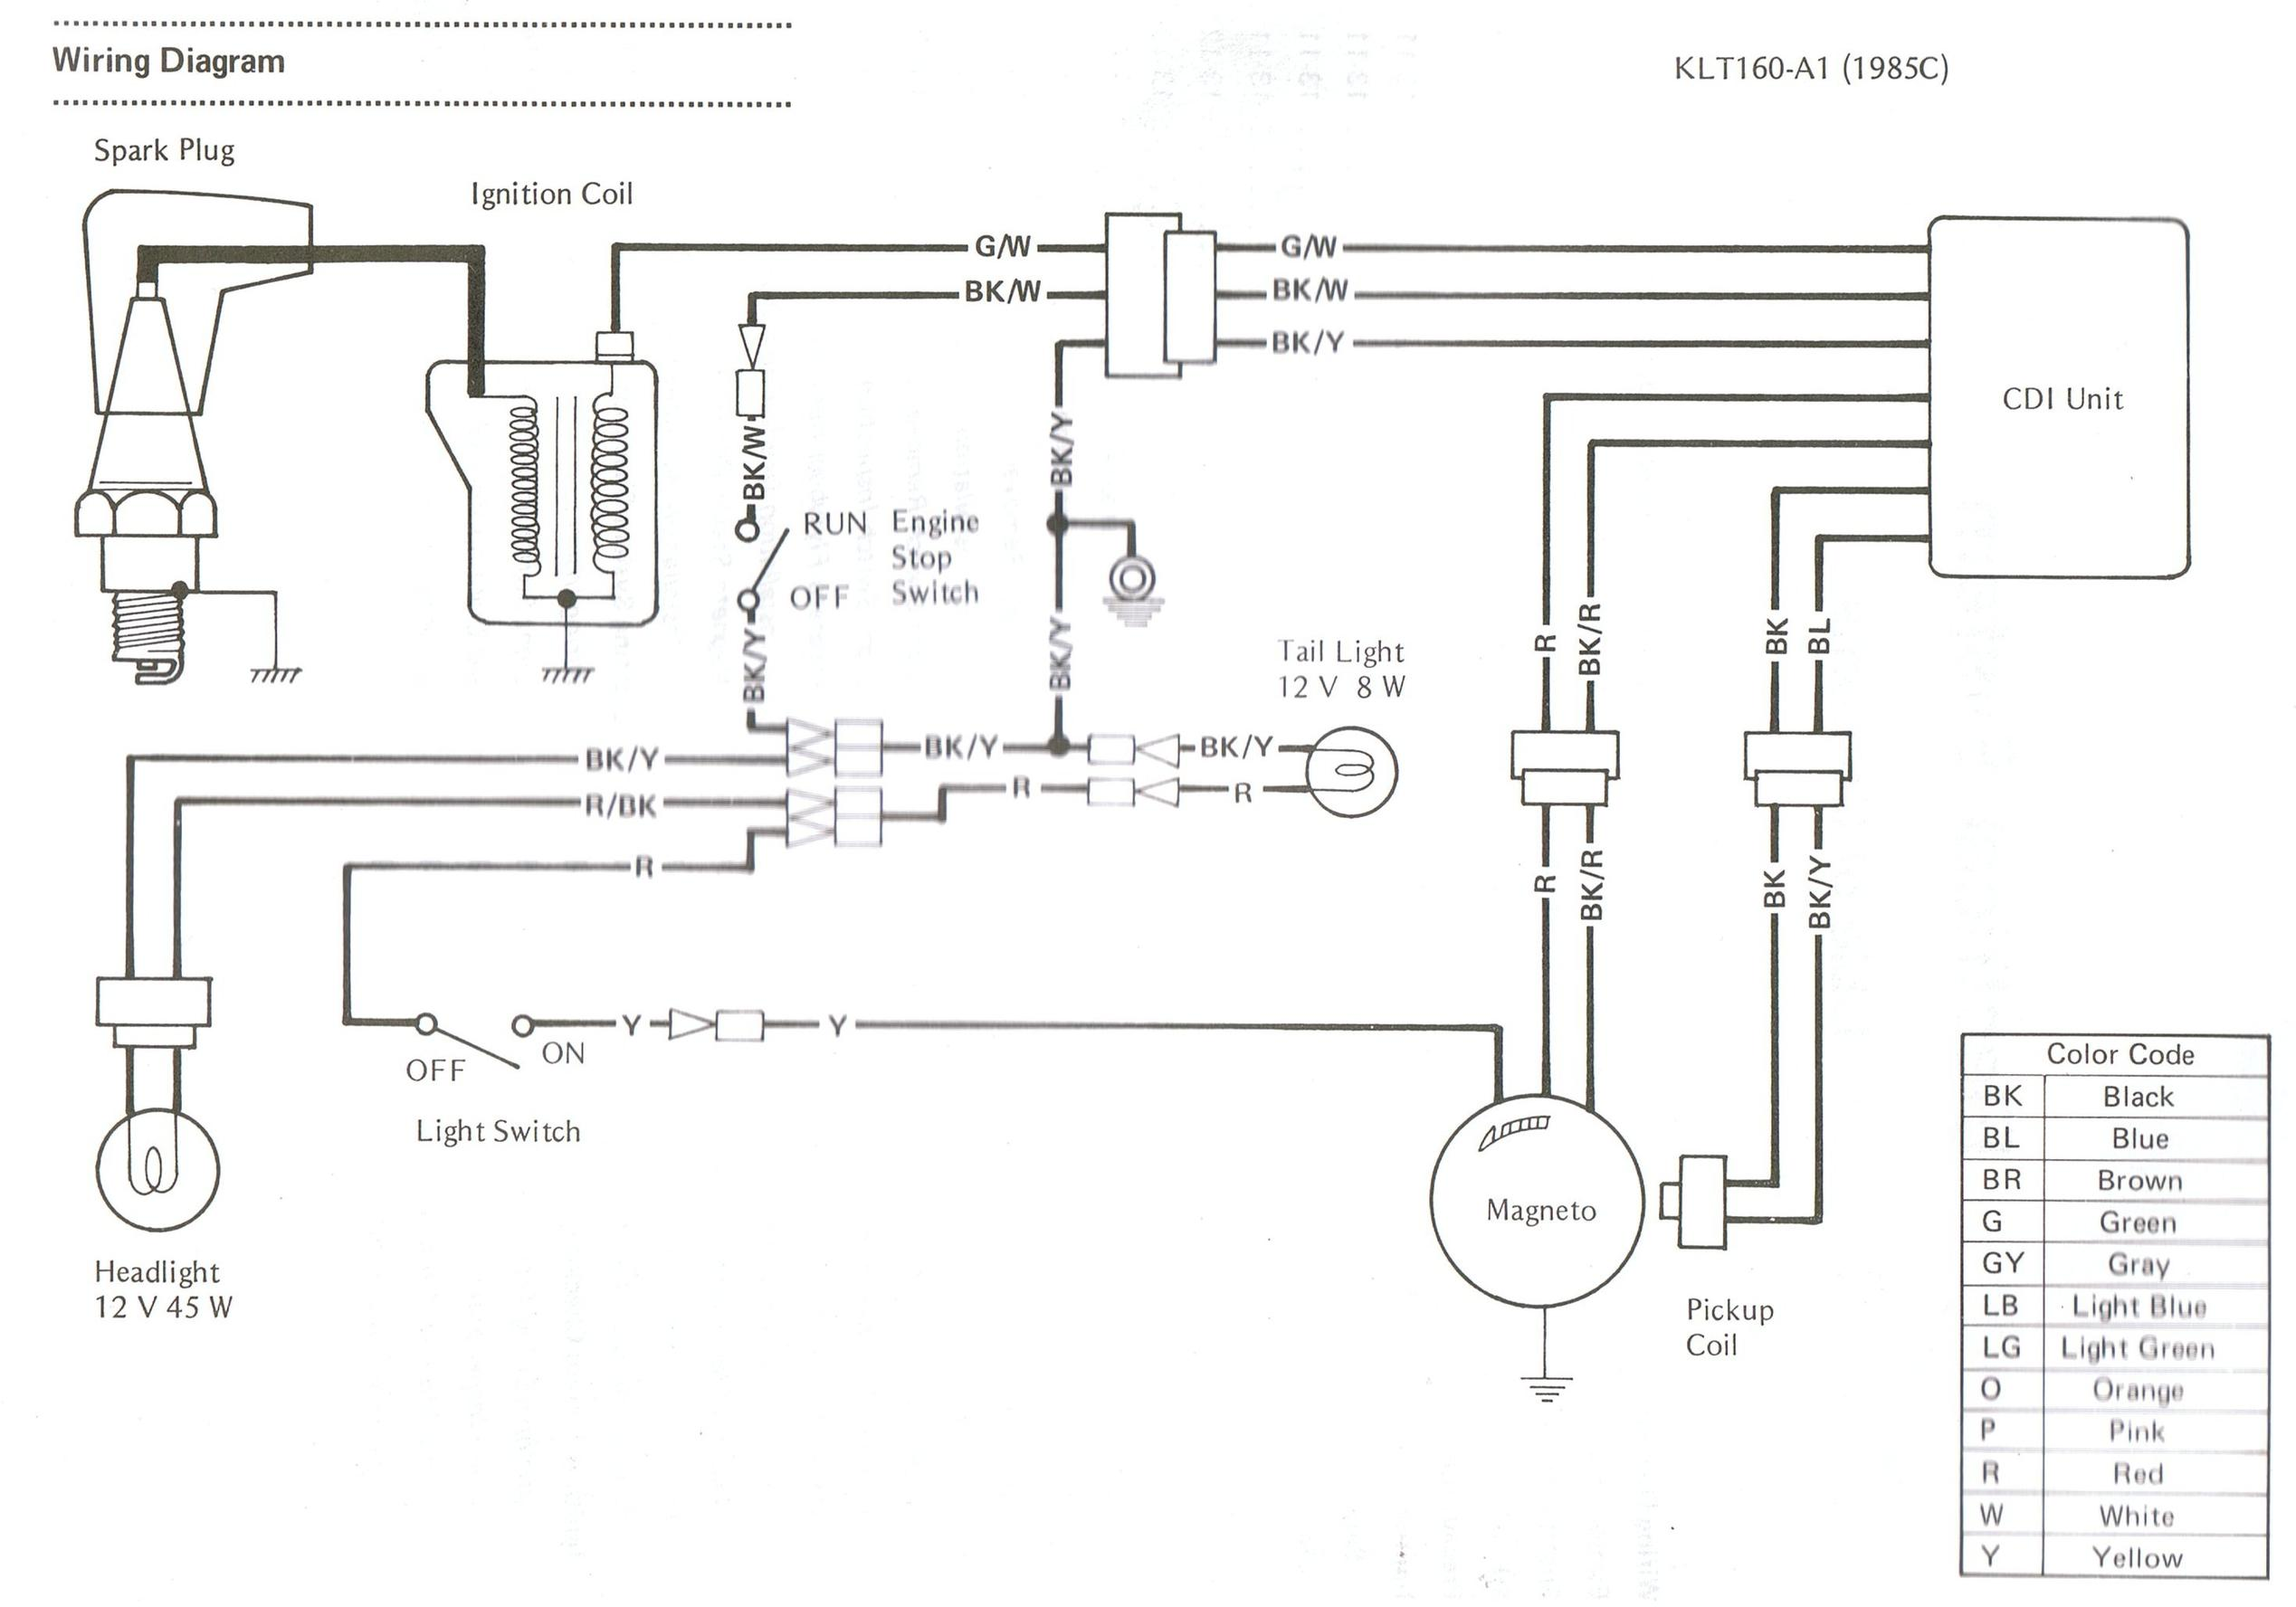 Wiring Diagram Polaris Xplorer 300 The Wiring Diagram – Kawasaki Bayou 220 Wire Diagram